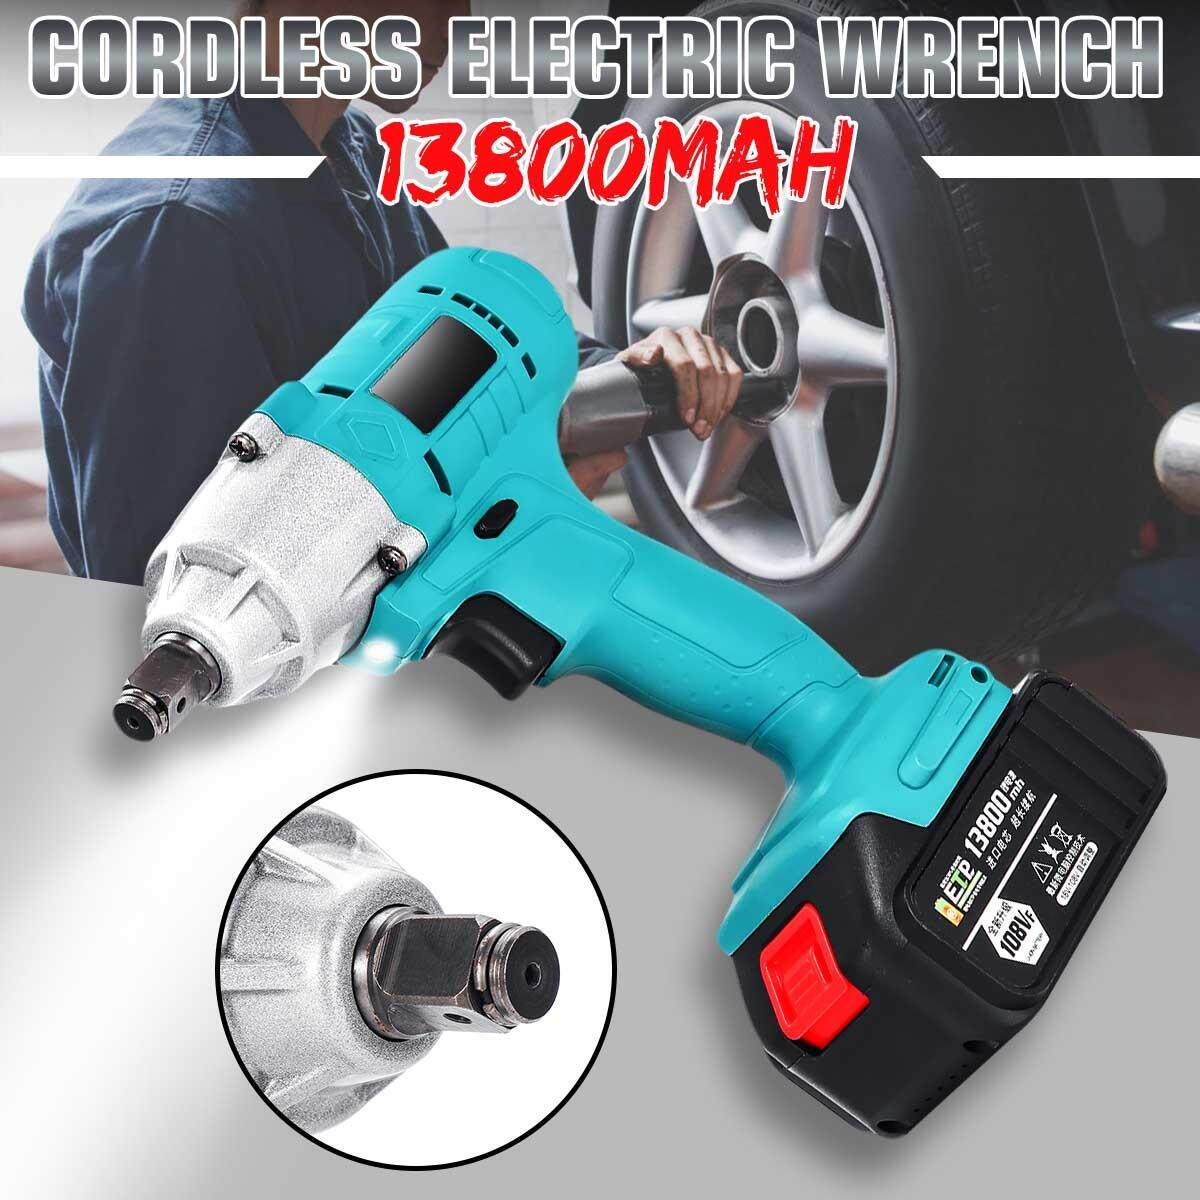 108VF 13800mAh Electric Cordless Impact Wrench High Torque Drill Tool 3800RPM